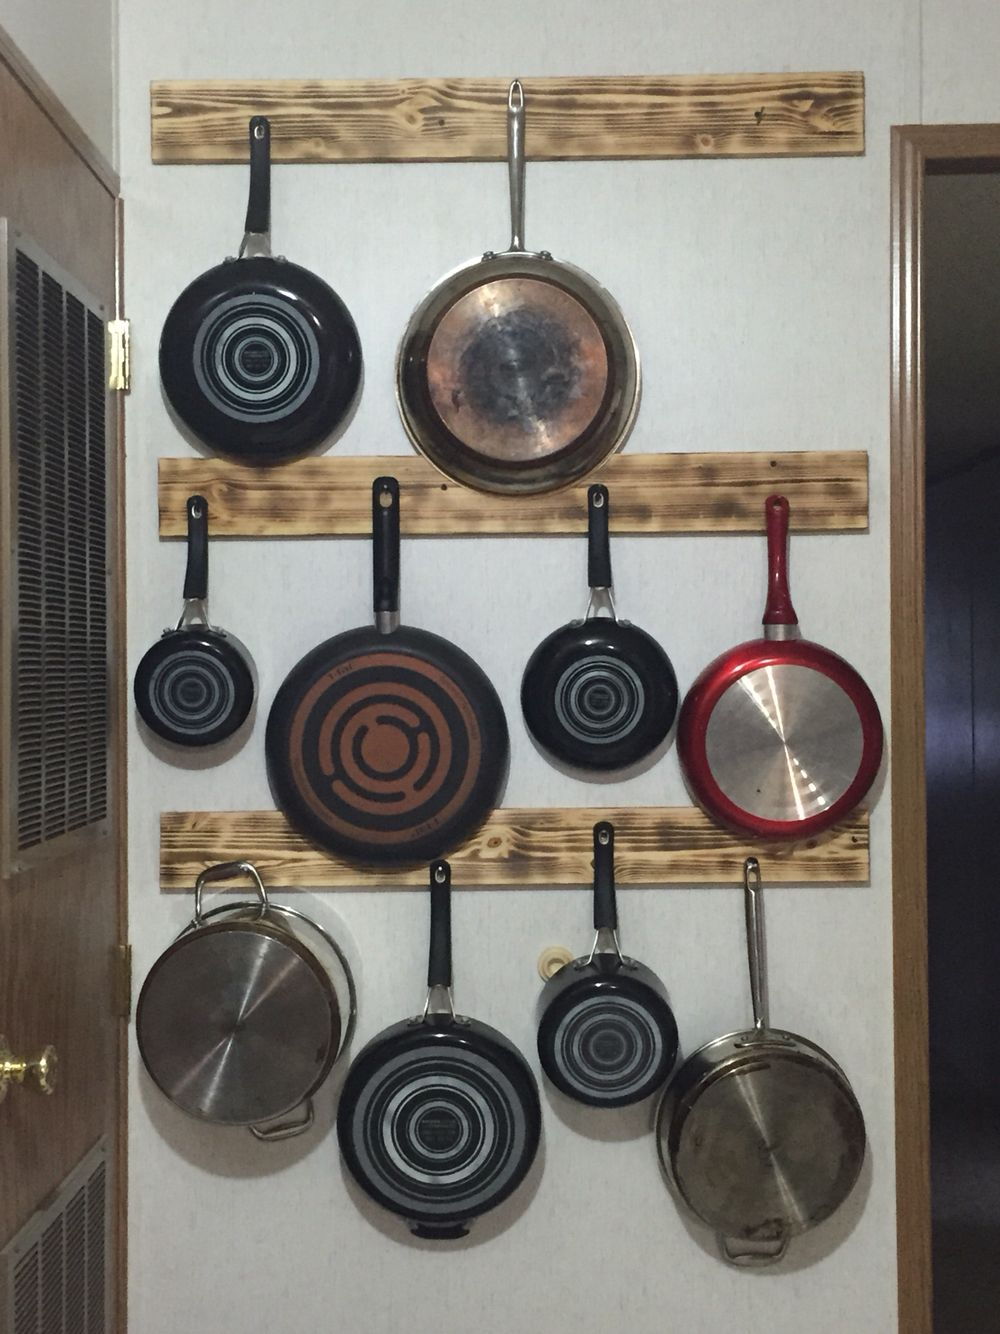 Hanging Pots And Pans Used Burnt Wood